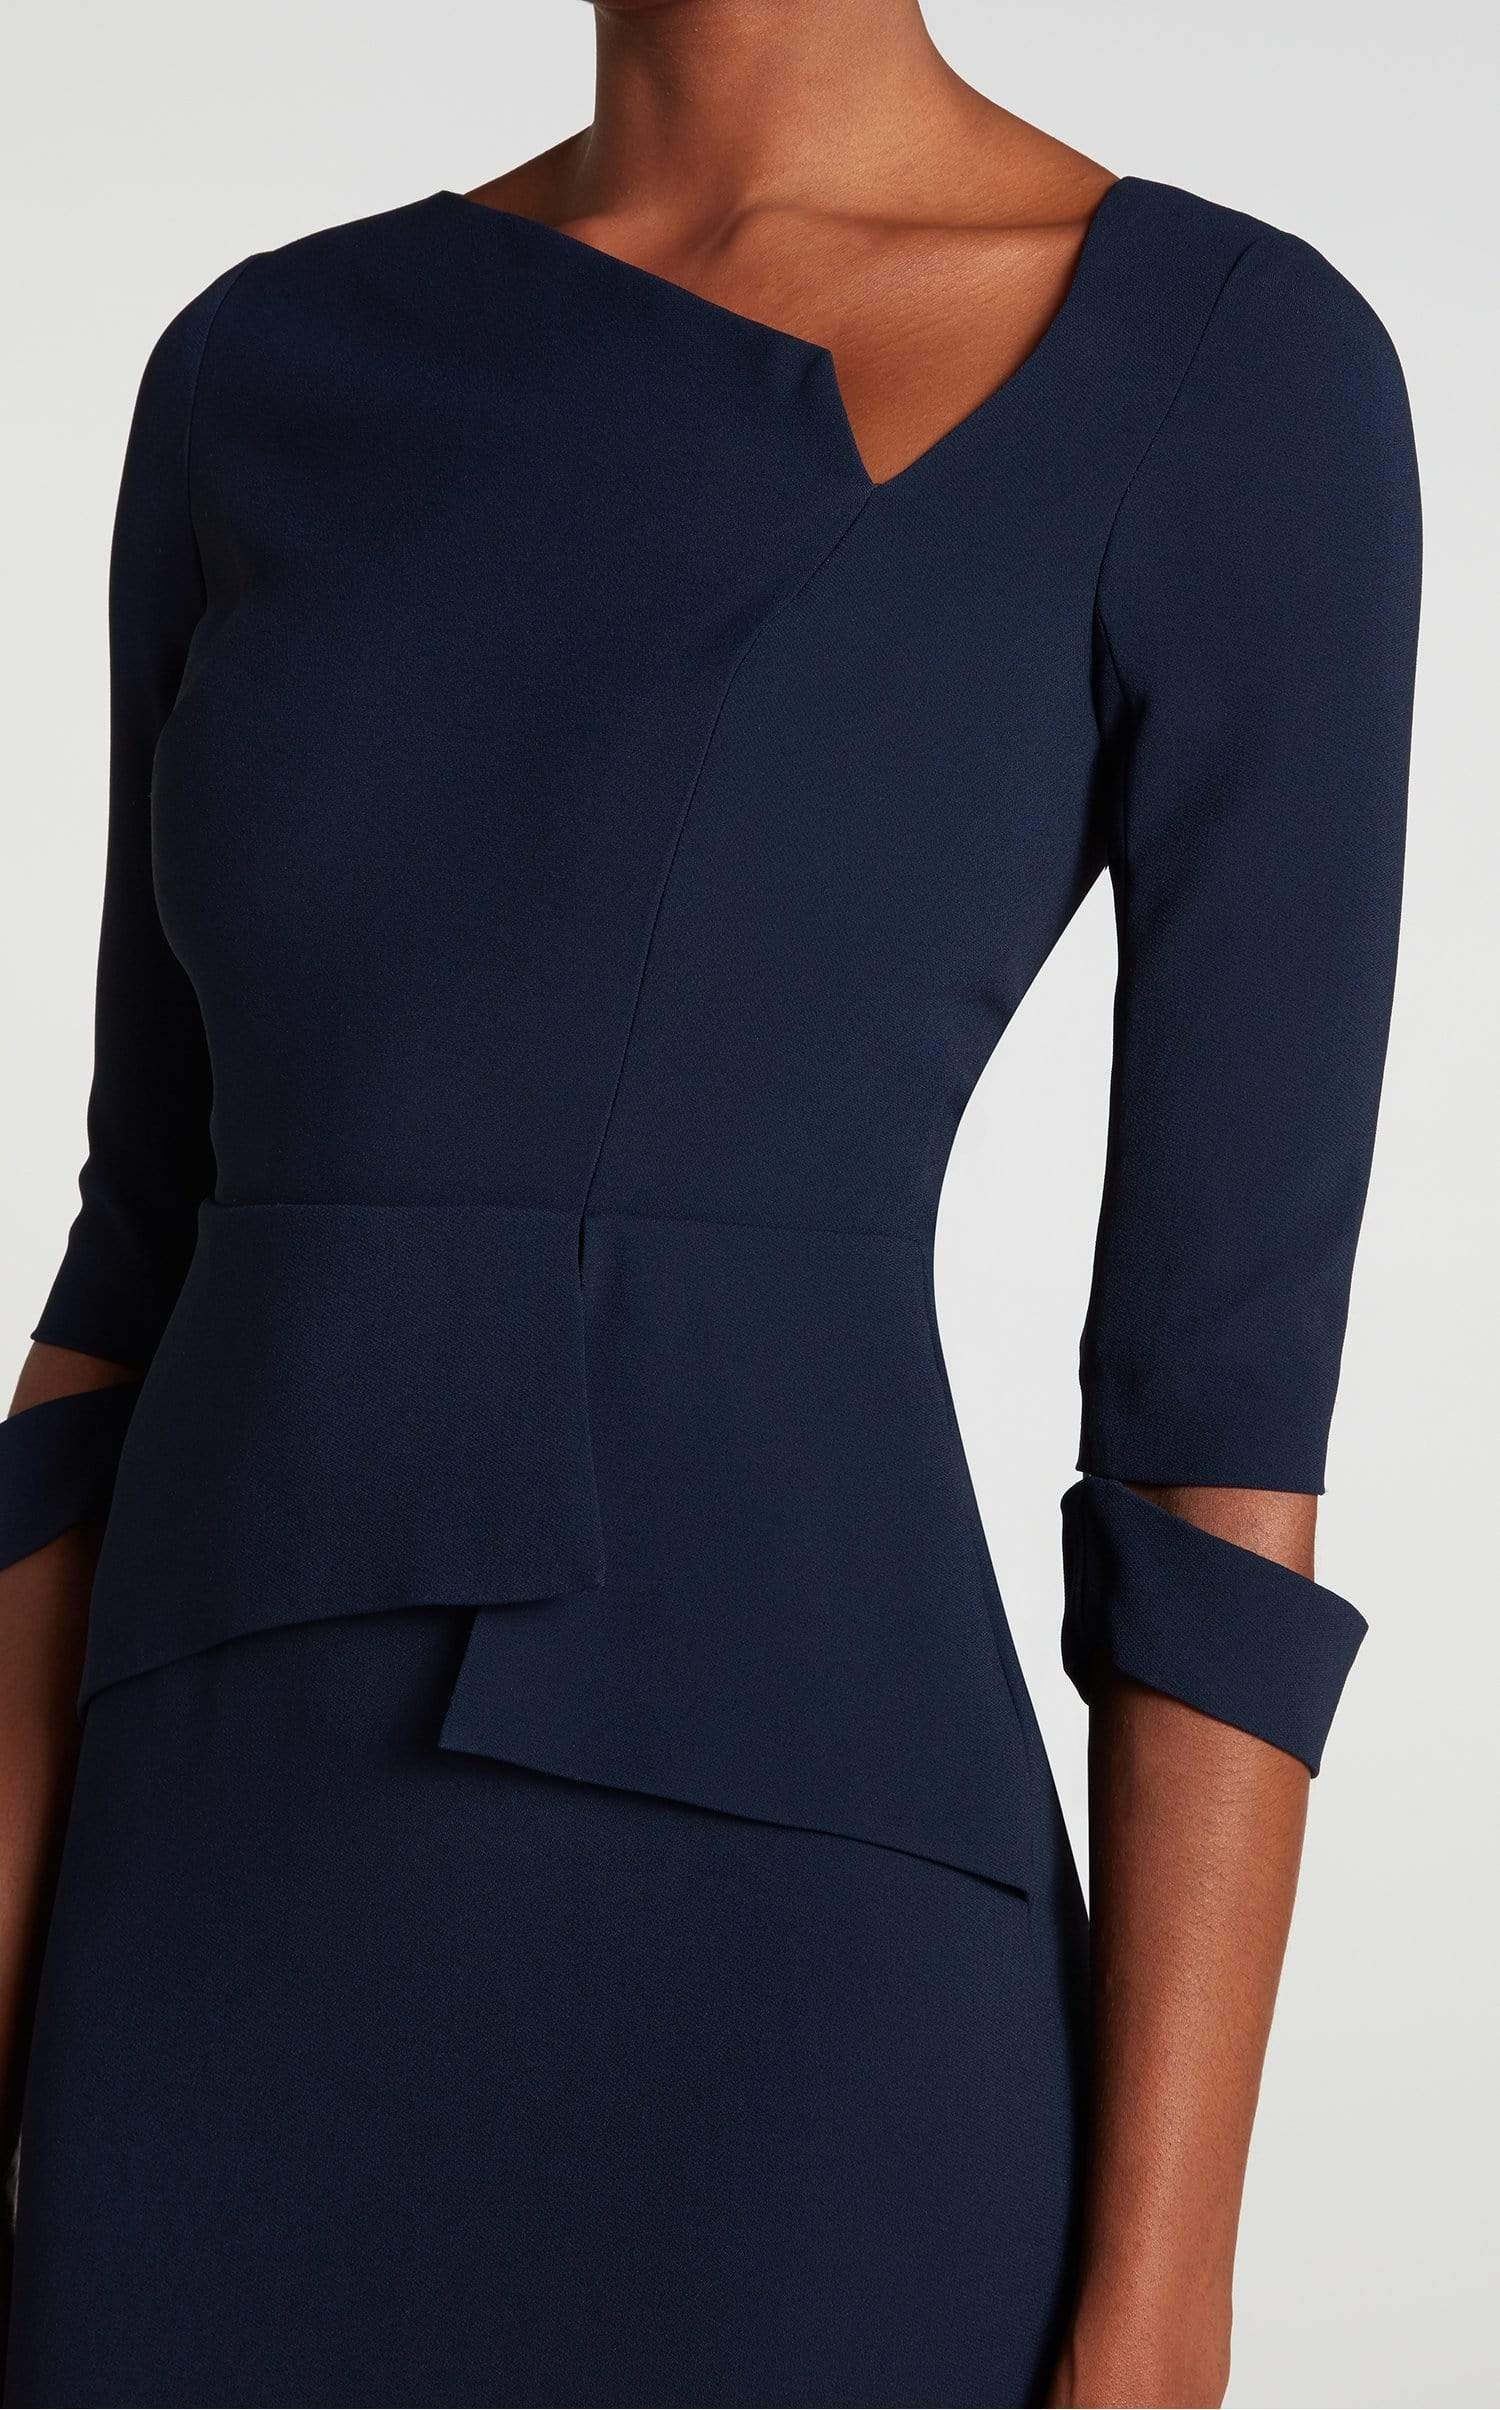 Dunne Dress In Navy from Roland Mouret